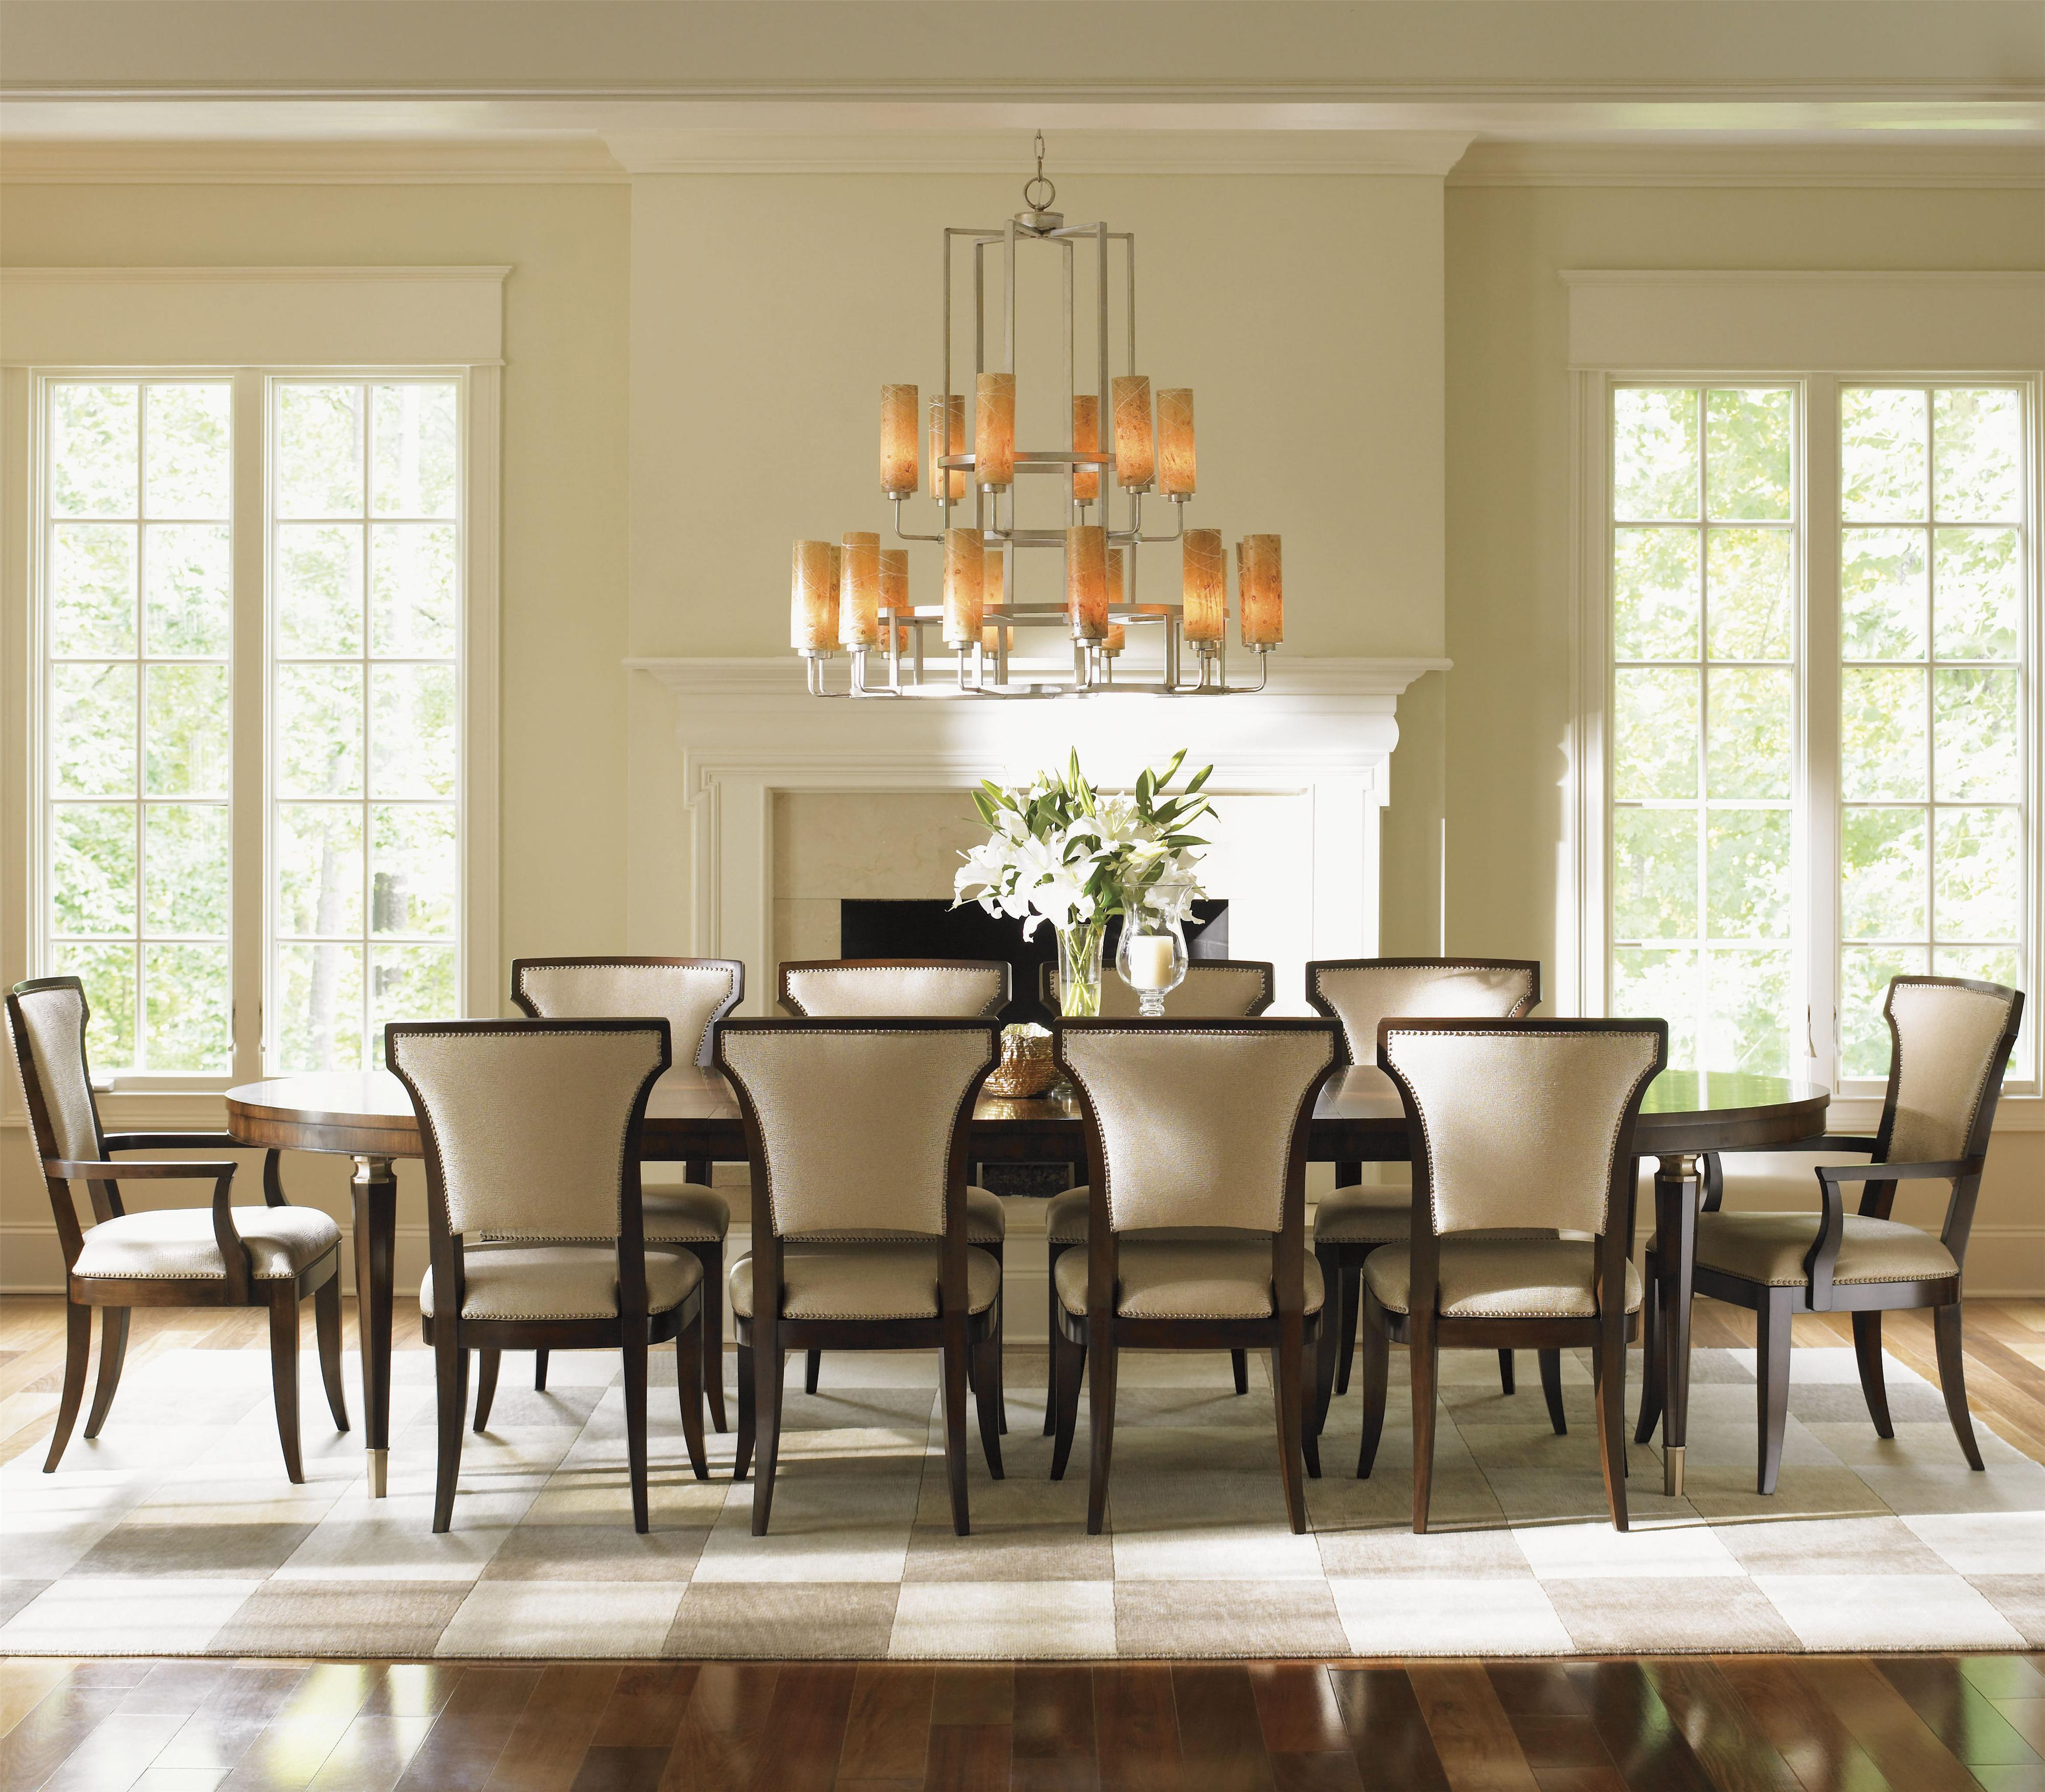 11 piece dining room set lexington tower place 11 piece formal dining set with seneca married fabric sidechairs belfort 6136